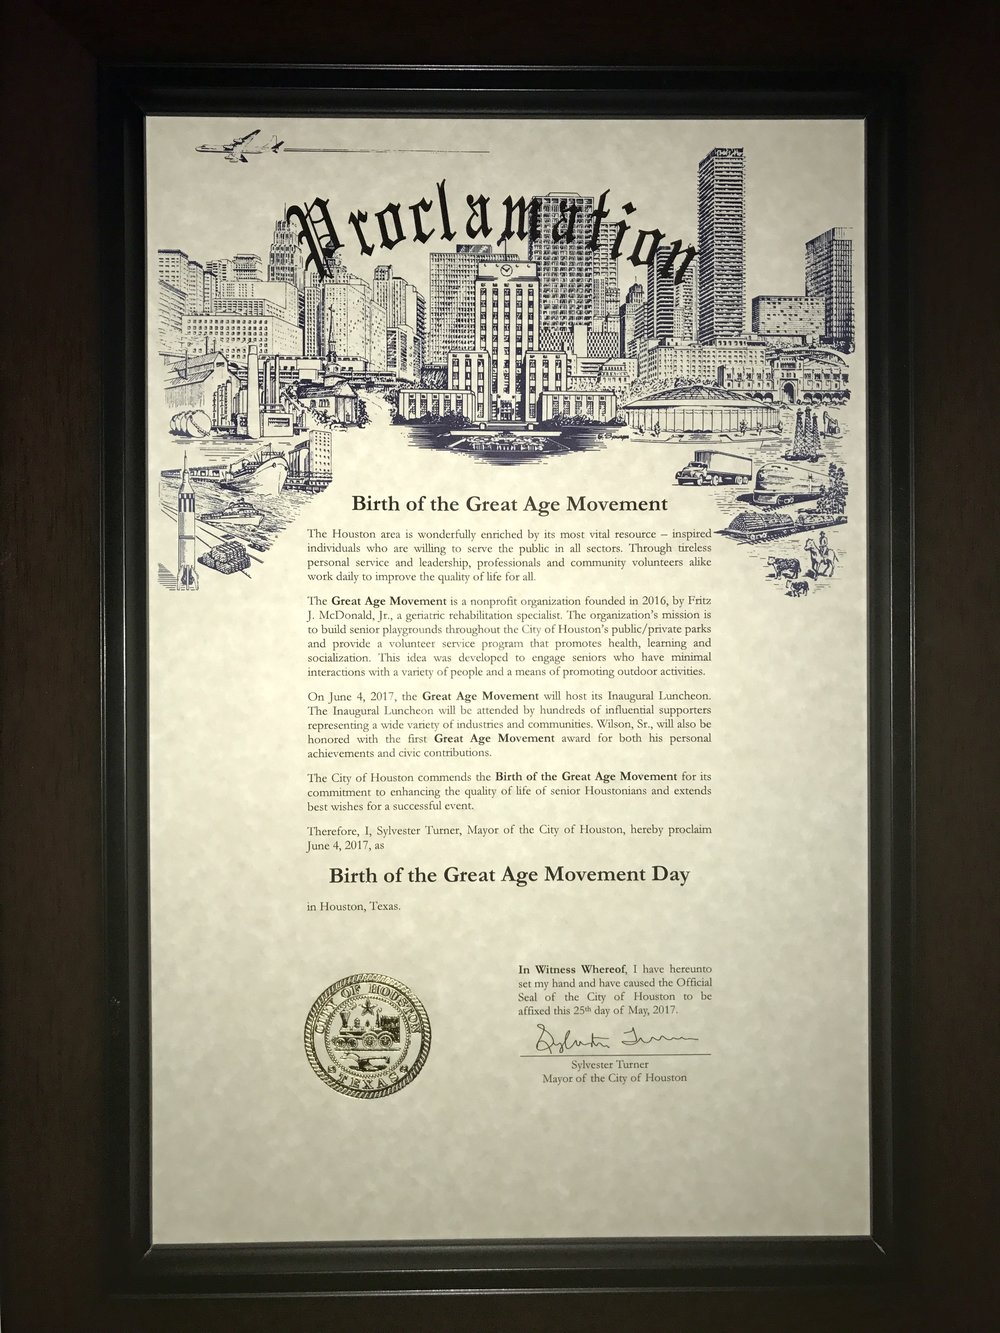 Great Age Movement Day  - City of Houston Proclamation June 4, 2017.